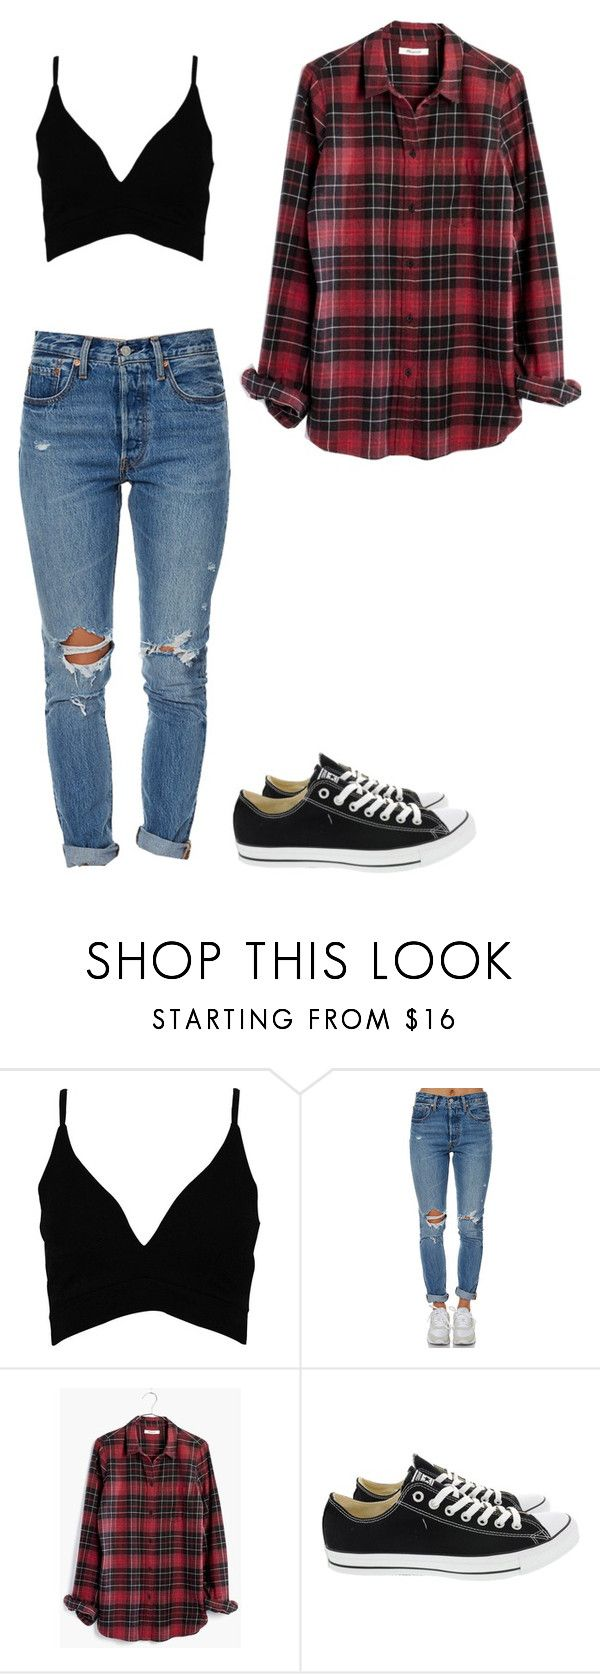 """Simple for the Summer"" by ifrancesconi on Polyvore featuring Boohoo, Levi's, Madewell and Converse"